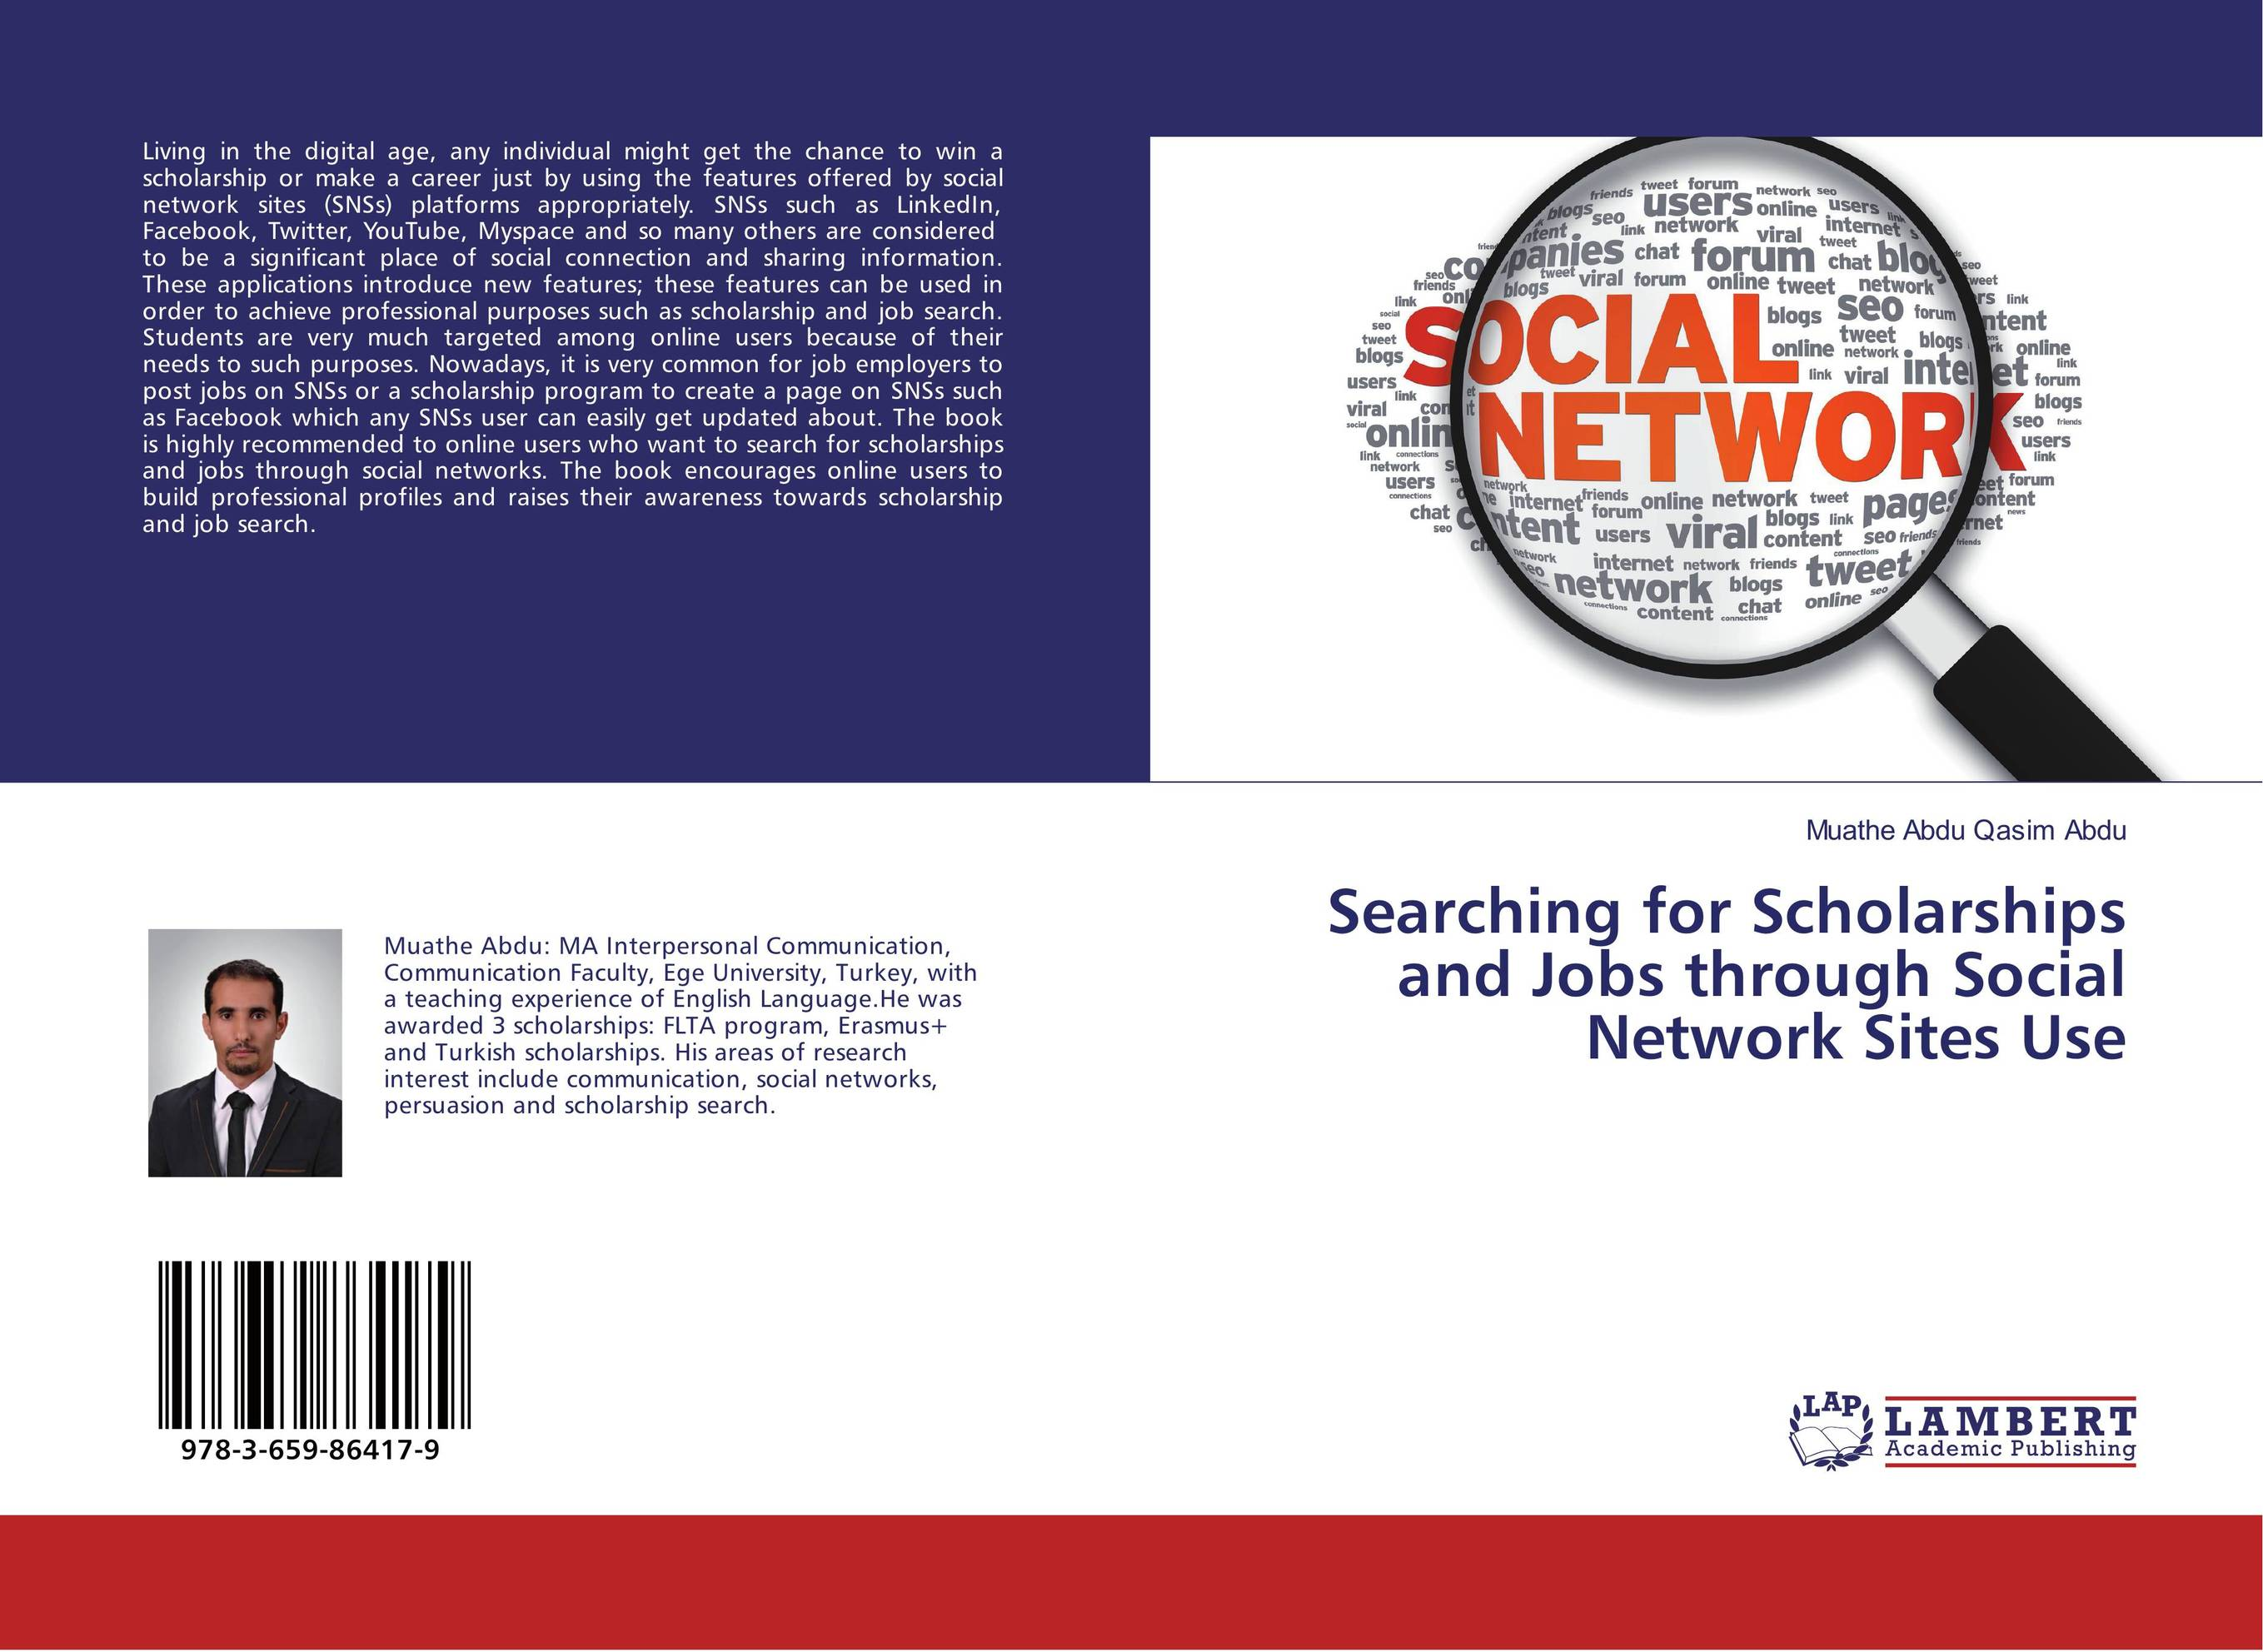 Searching for Scholarships and Jobs through Social Network Sites Use k p singh and malkeet singh gill use of social networking sites in india